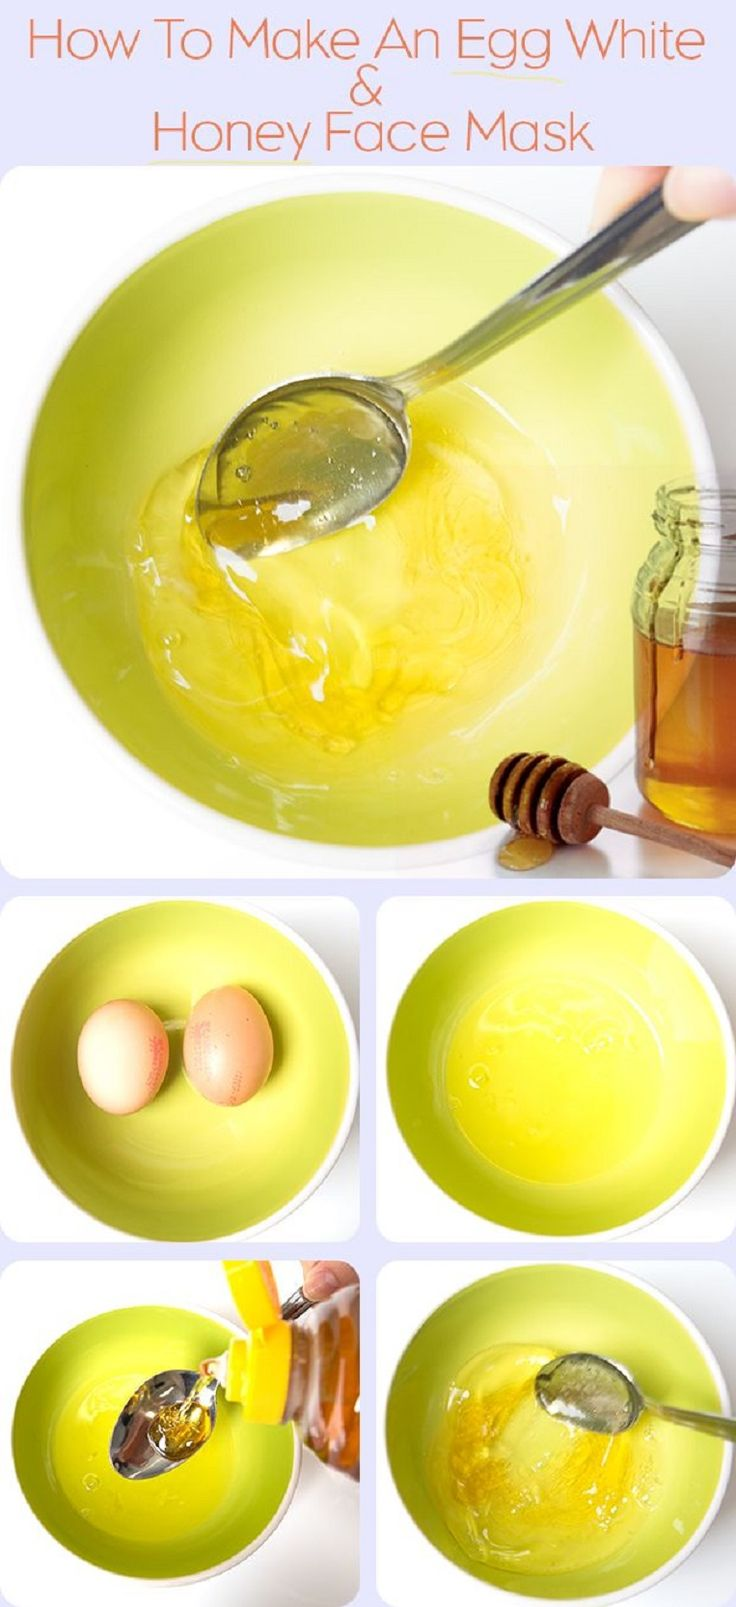 egg white & honey face mask - It shrunks your pores and makes your skin glowing